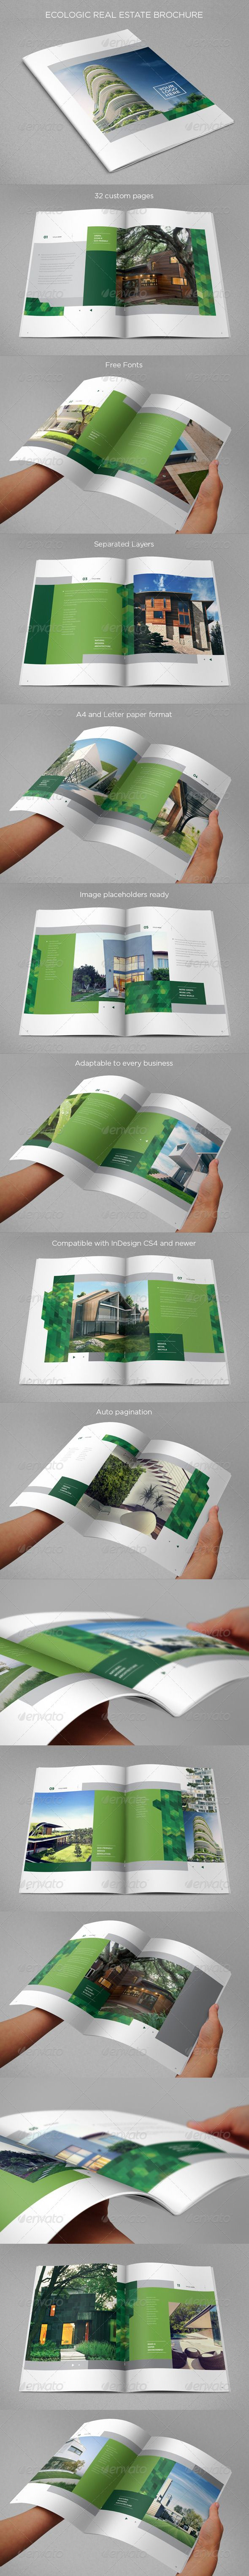 Ecologic Real Estate Brochure — InDesign INDD #a4 #modern • Available here → https://graphicriver.net/item/ecologic-real-estate-brochure/8645126?ref=pxcr